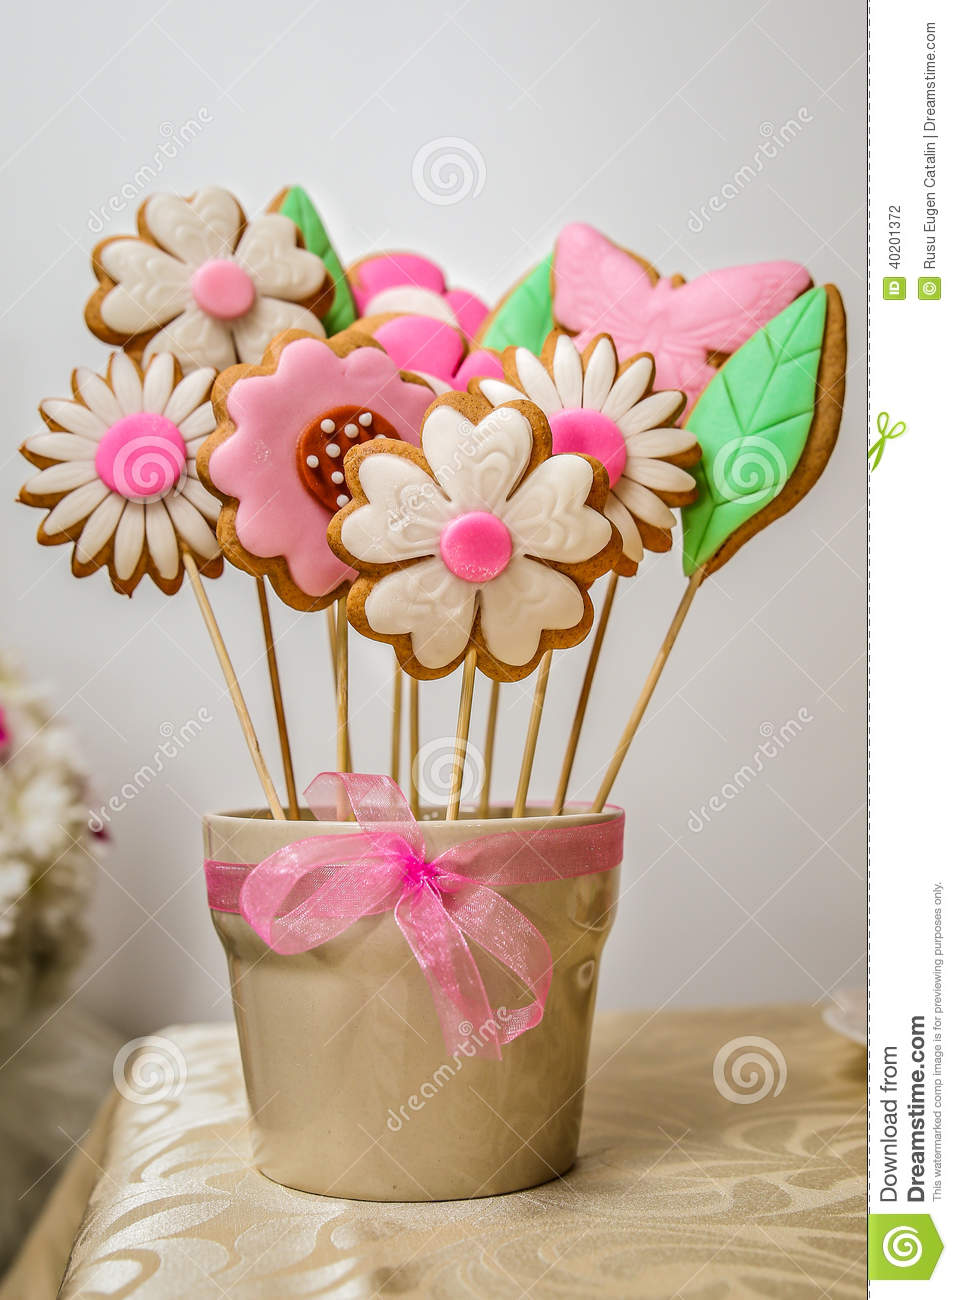 Cookies flowers candy bouquet stock photo image of pink aromatic cookies flowers candy bouquet izmirmasajfo